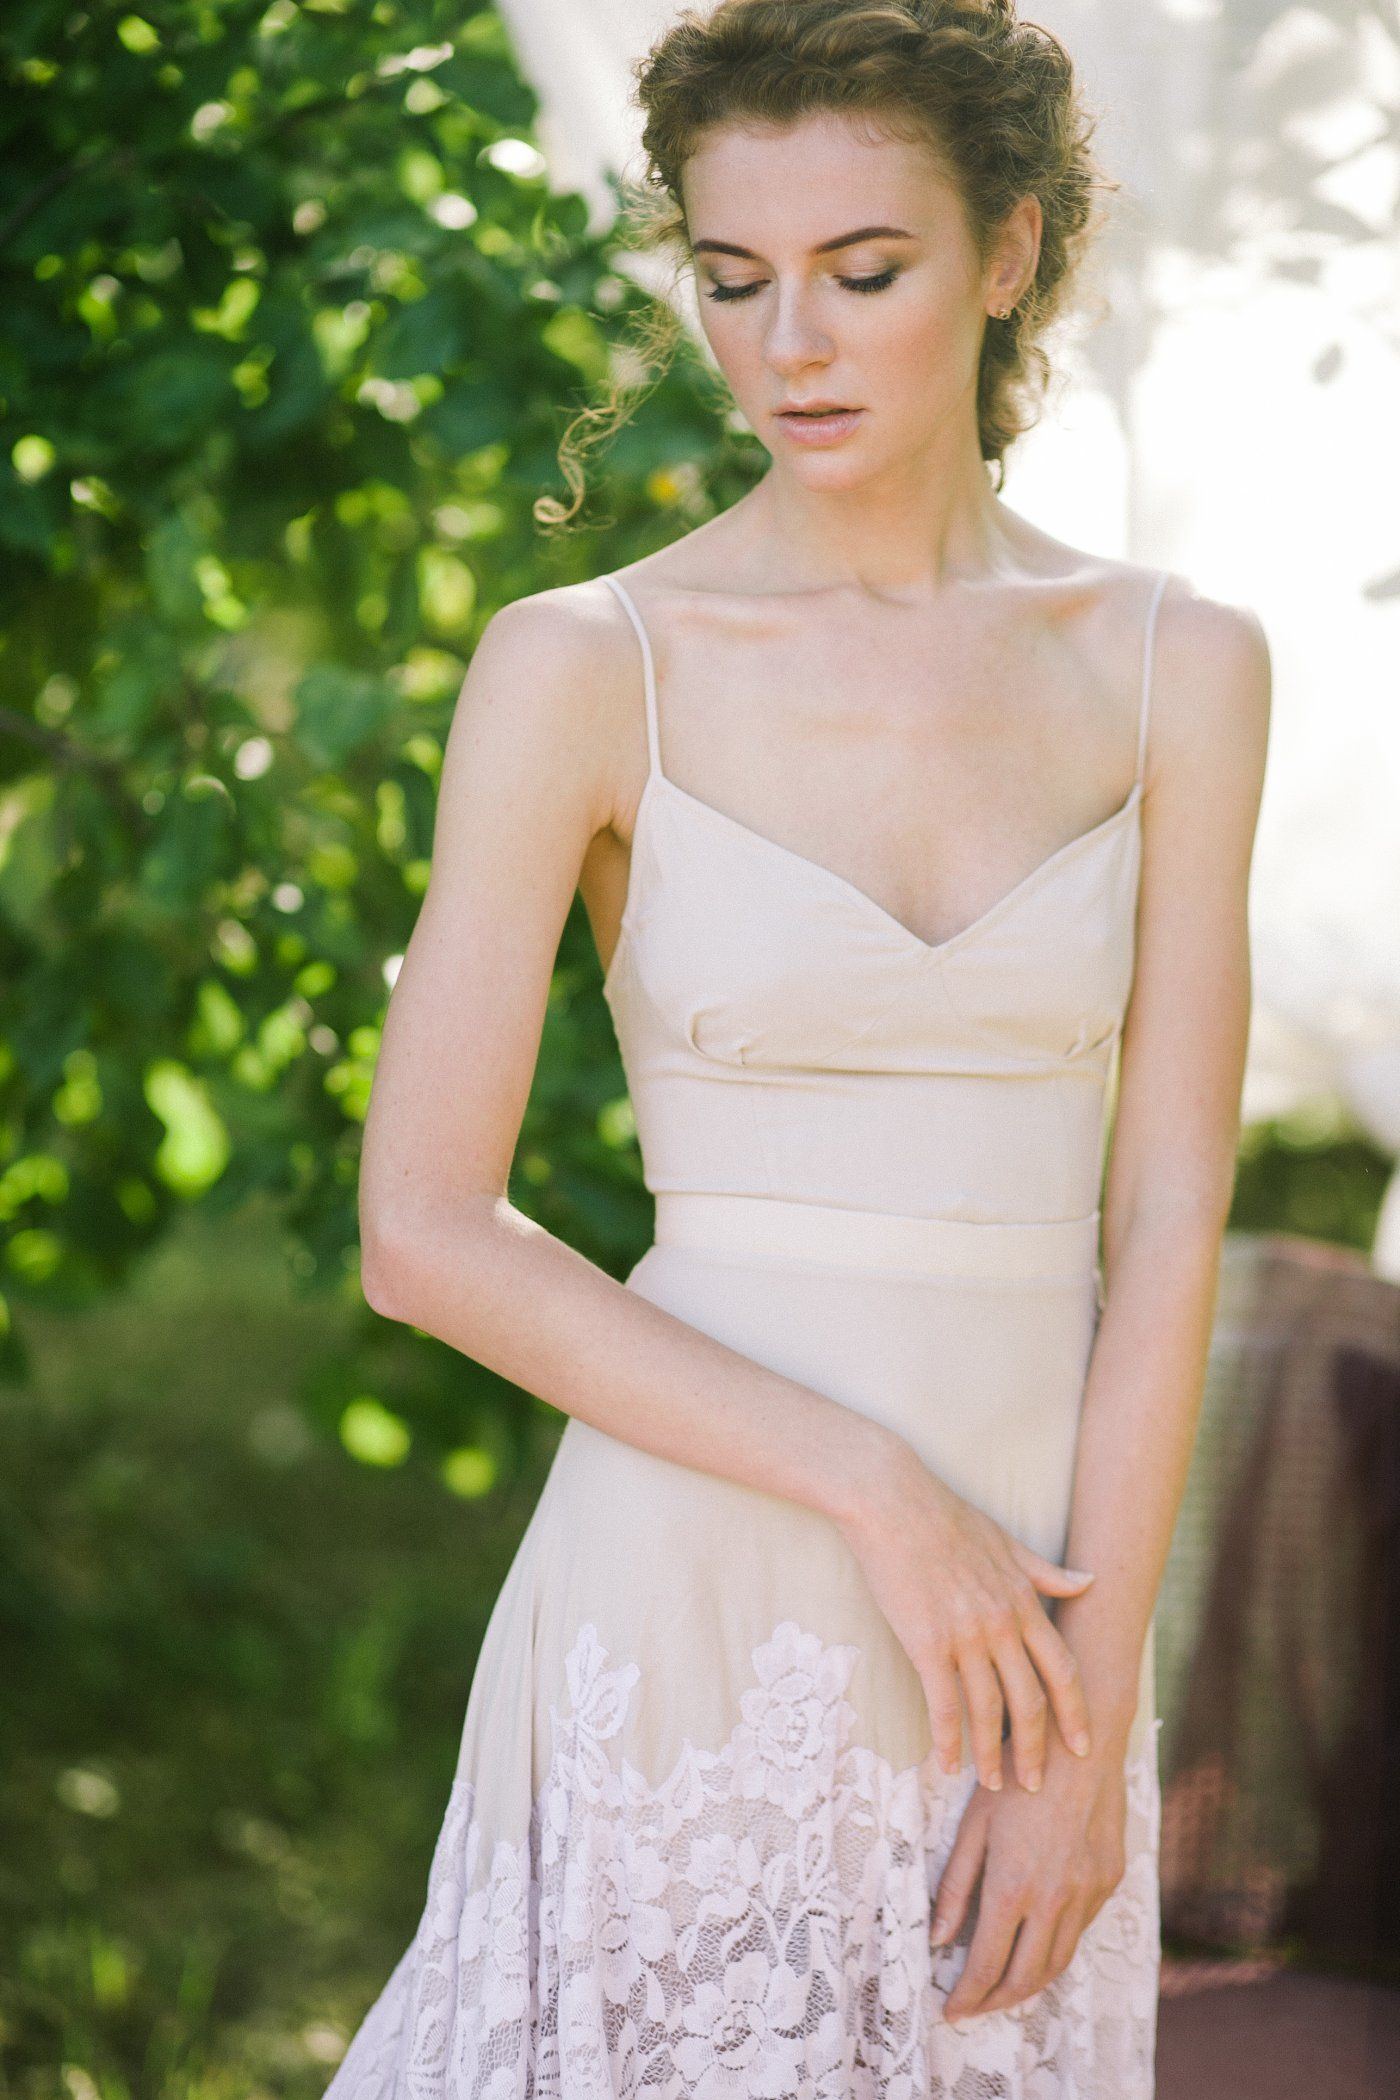 Noncorset a silhouette shade wedding dress with a purple lace skirt